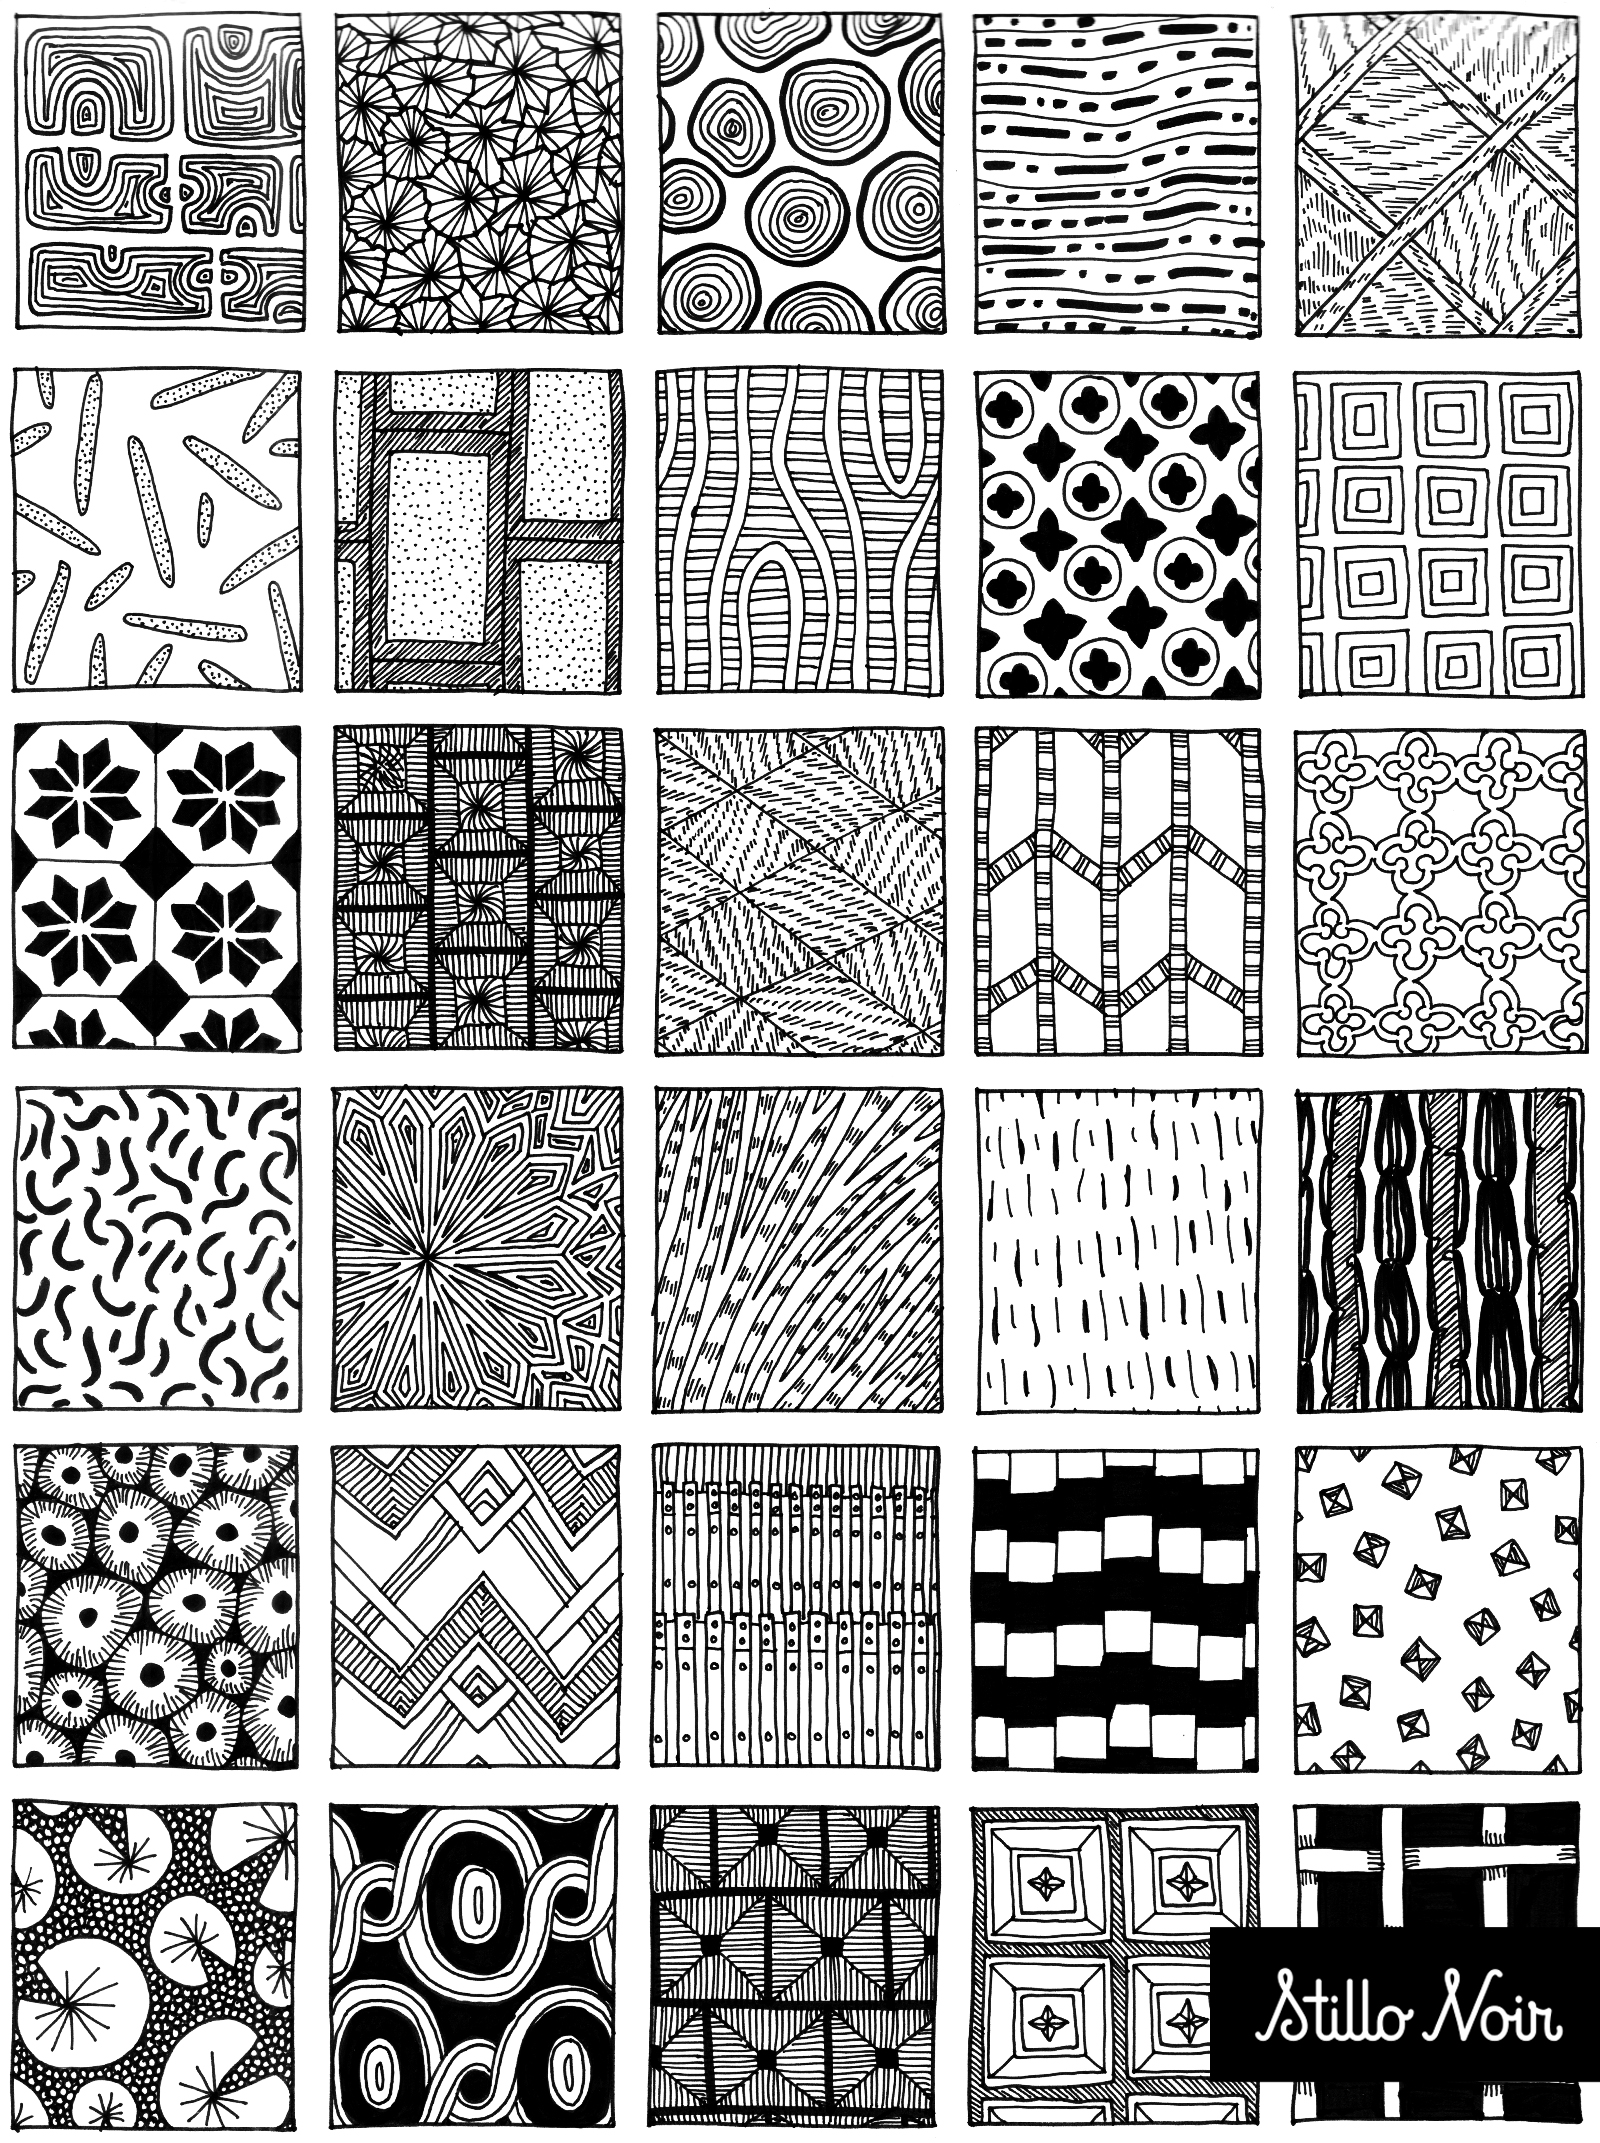 belgium_pattern_collection2_website_logo.jpg